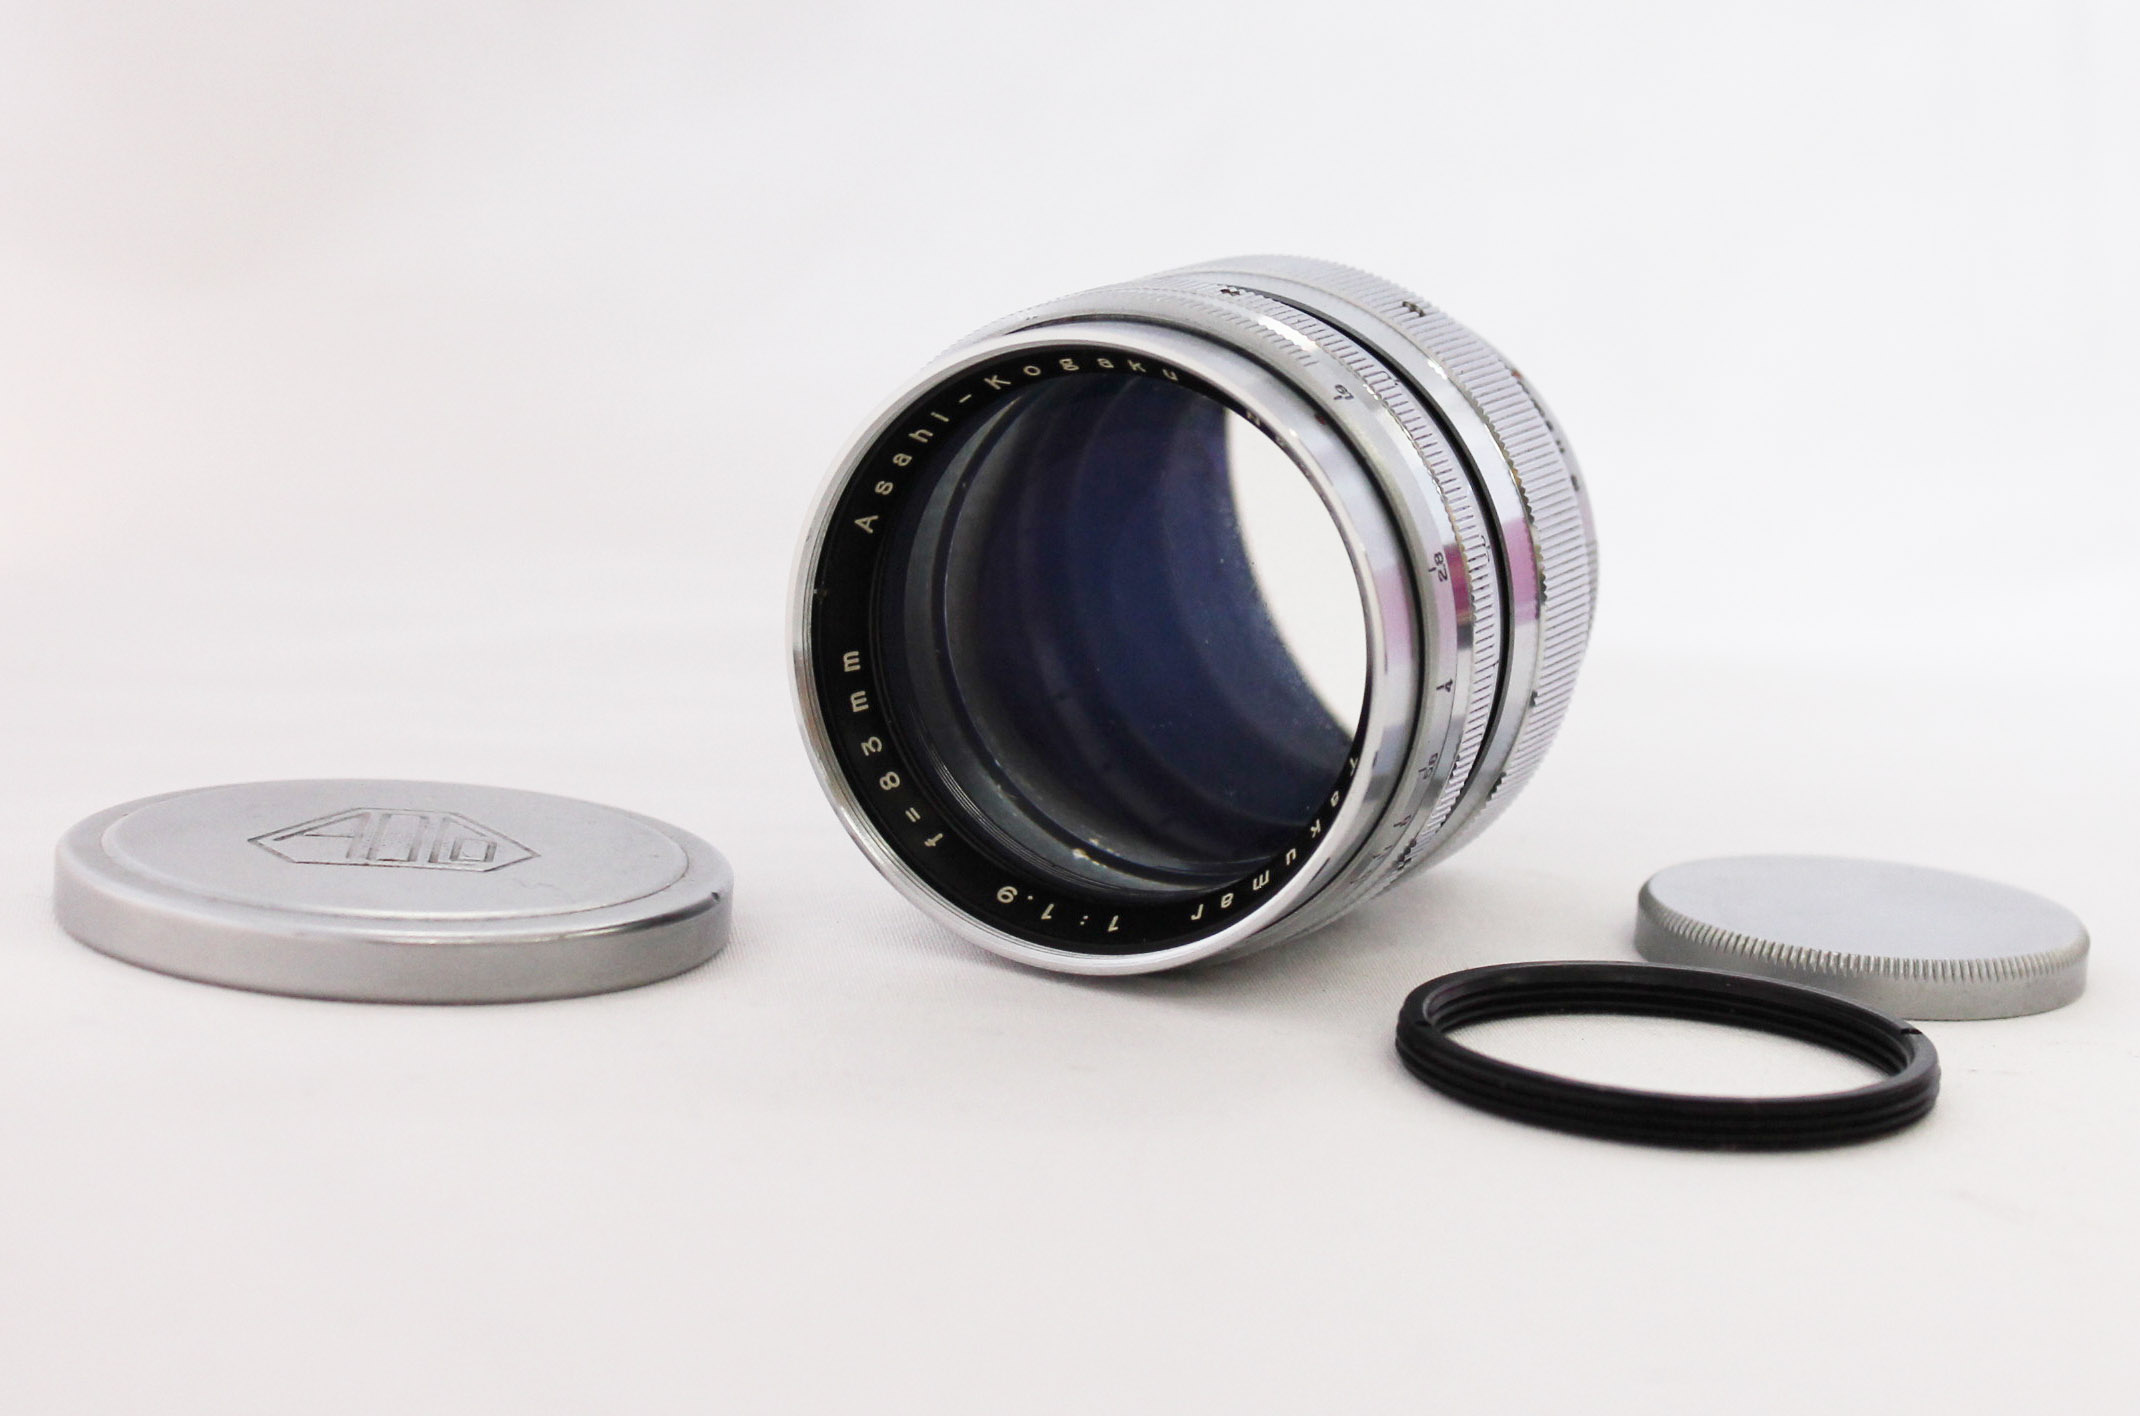 Japan Used Camera Shop | [Very RARE!] Asahi Pentax Takumar 83mm F/1.9 Lens for M37 Mount w/ M42 Adapter from Japan